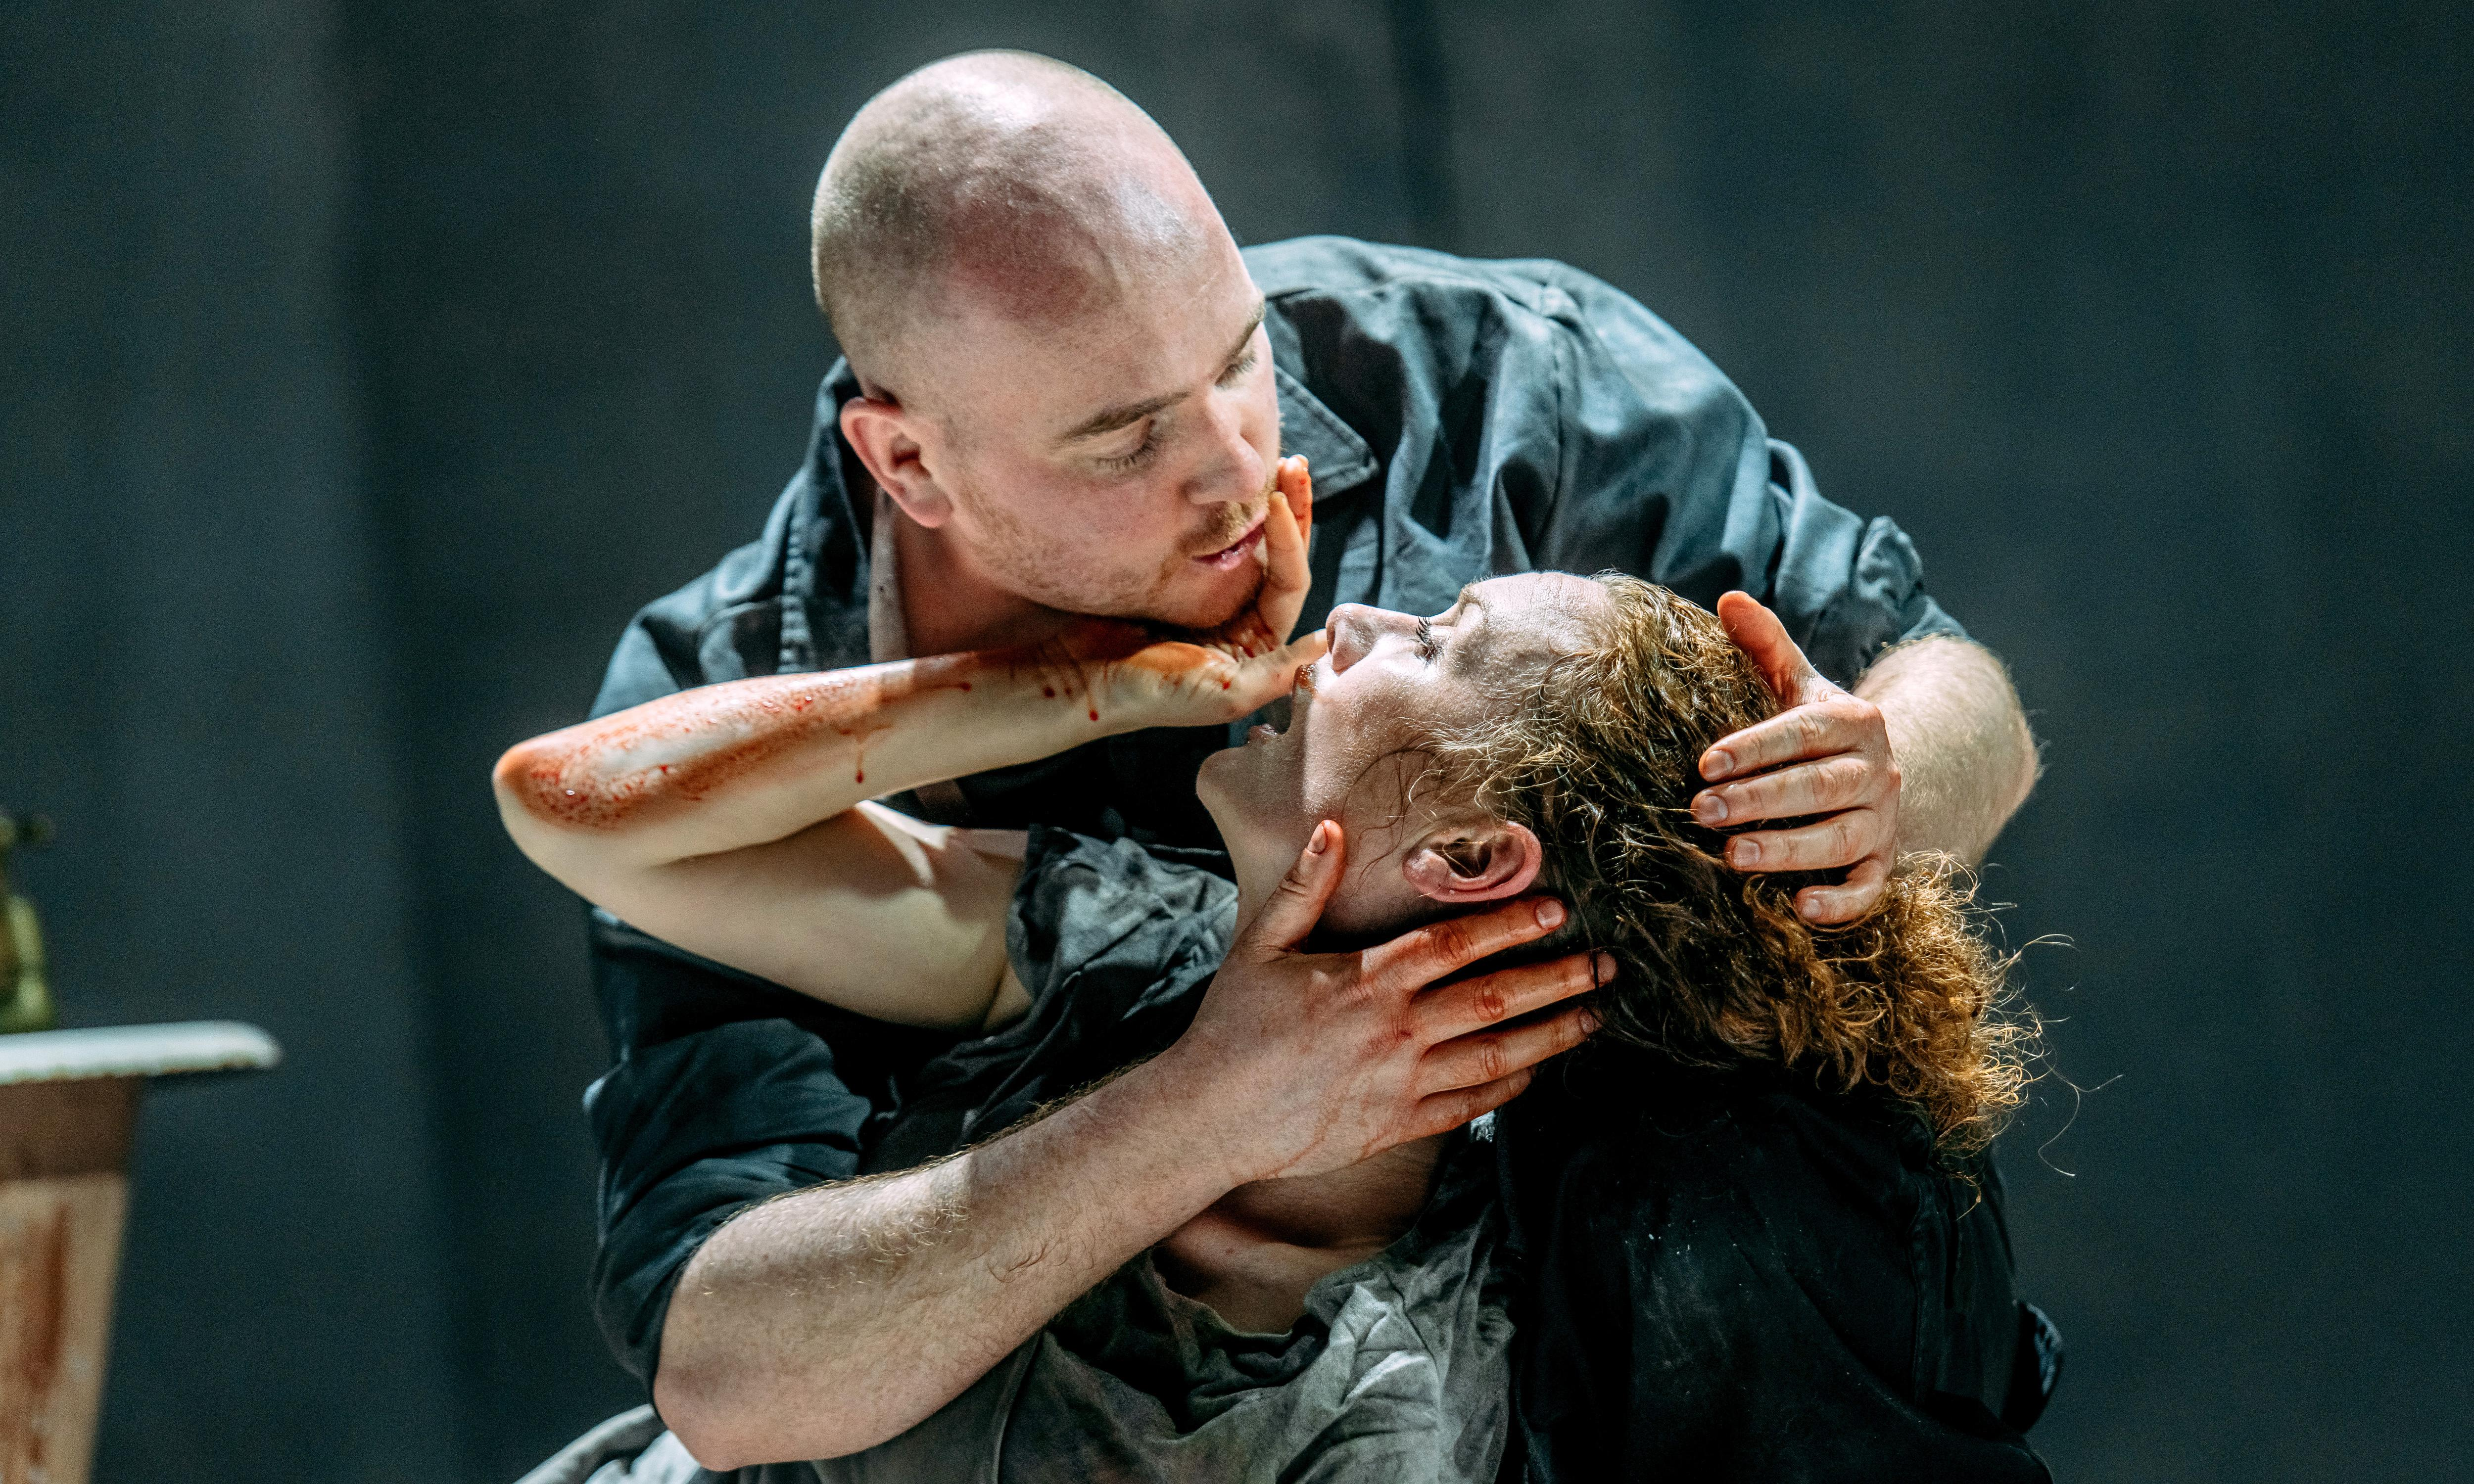 The Duchess (of Malfi) review – indictment of patriachal power